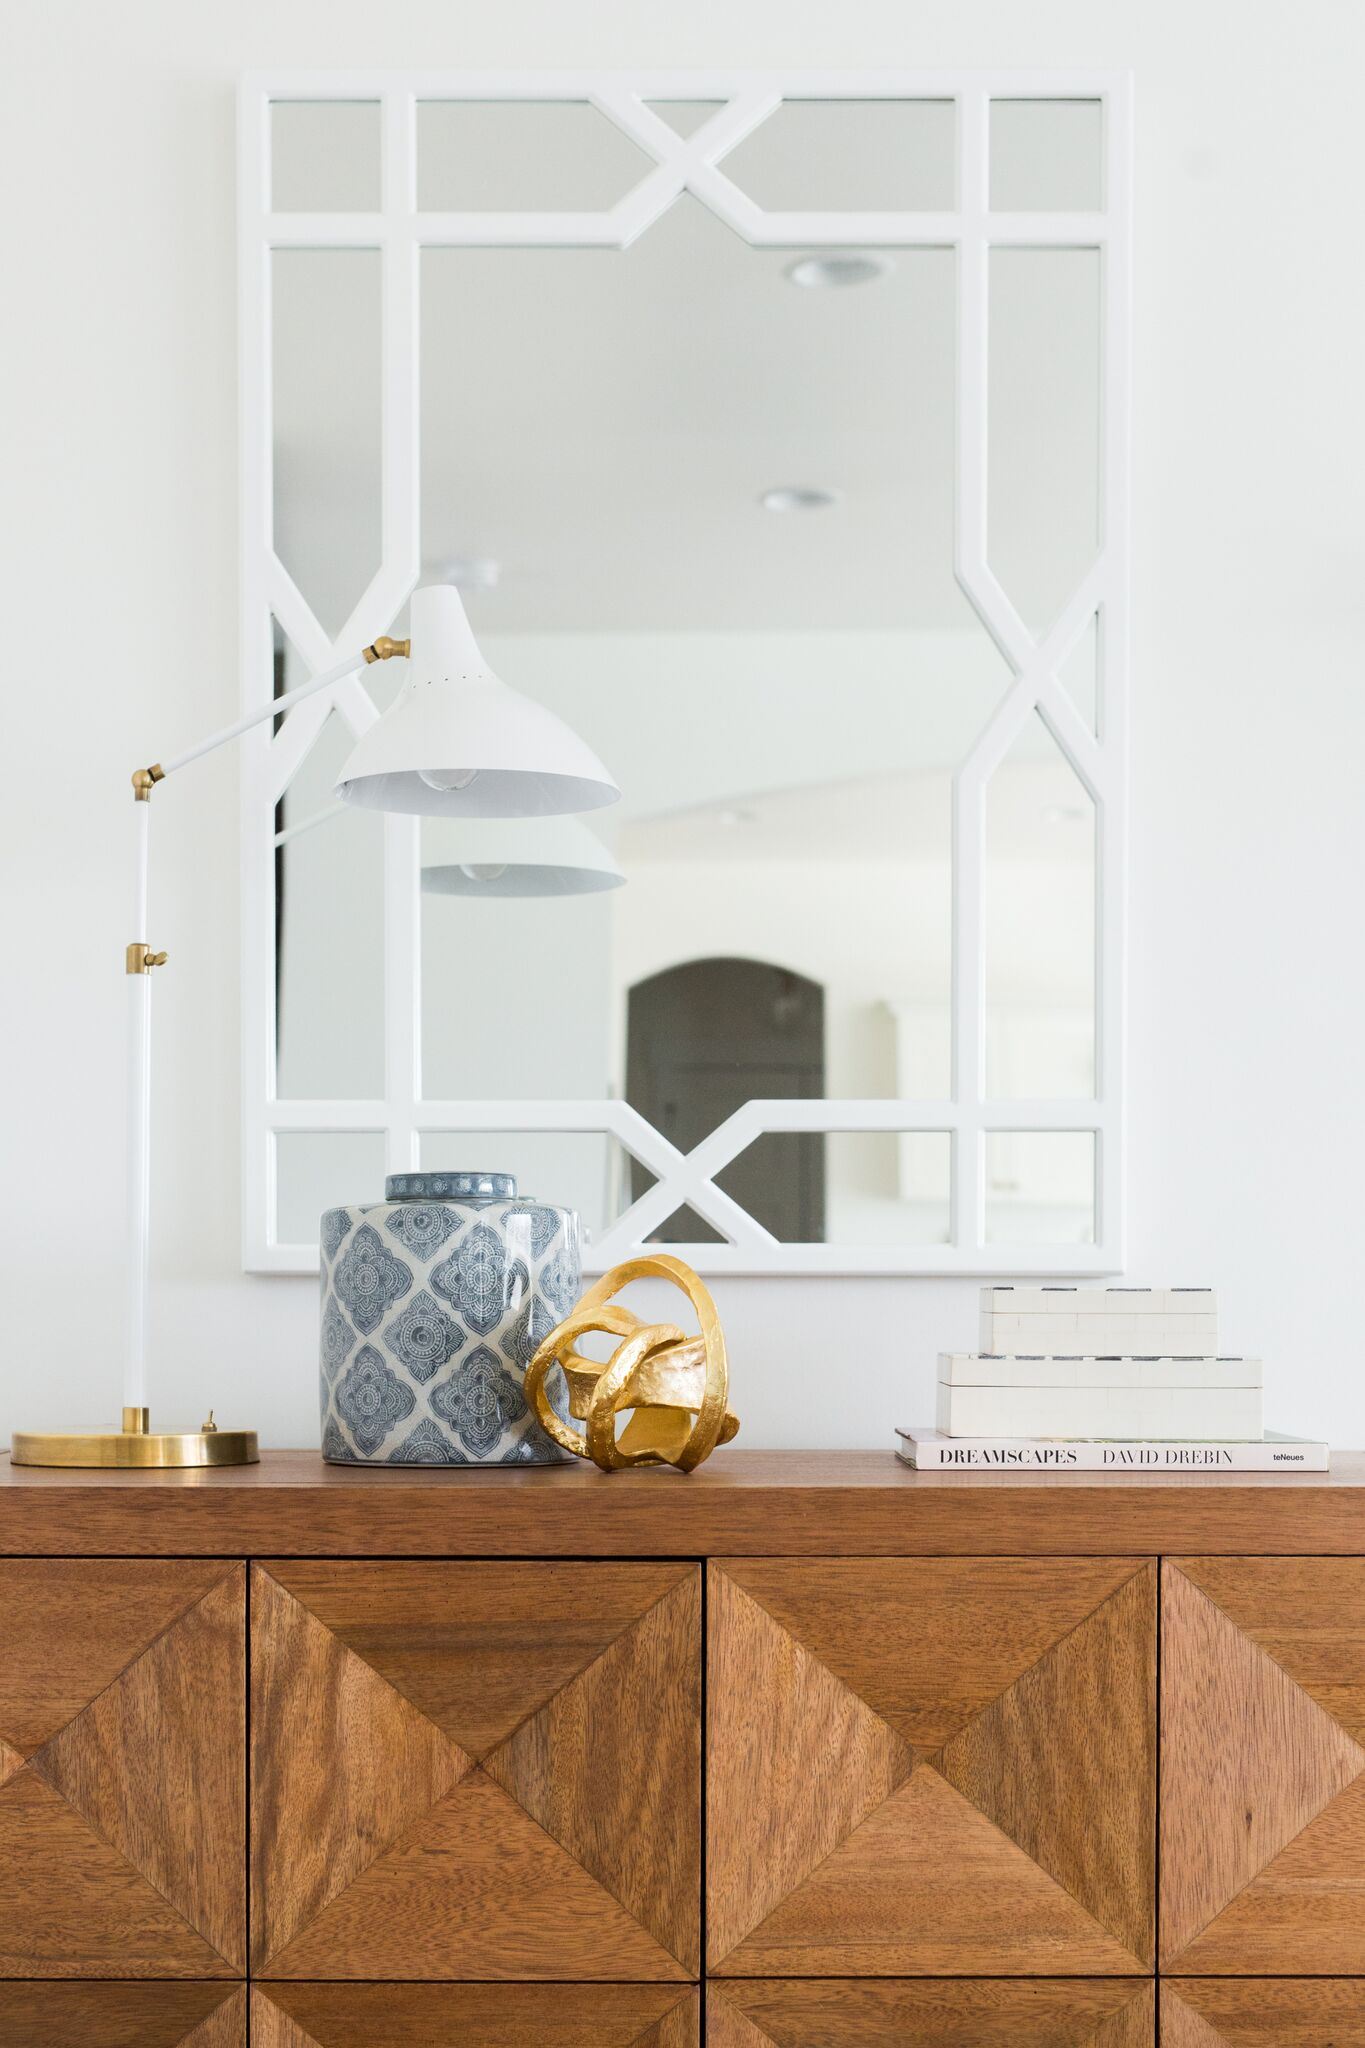 Vase and pictures atop wooden hutch